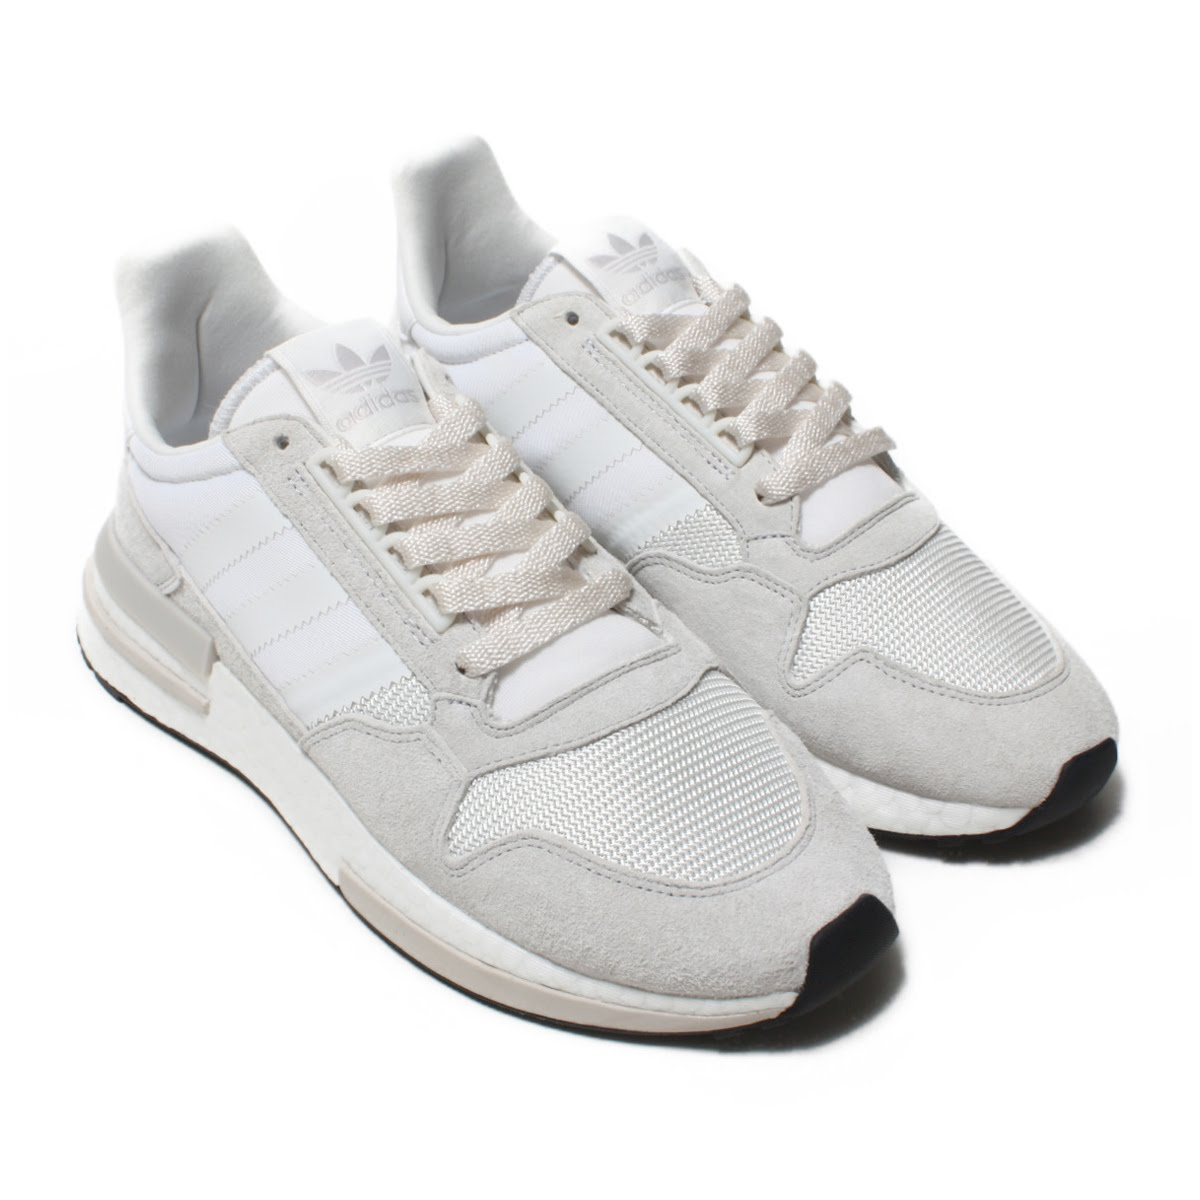 quality design 0dac0 bbd22 adidas Originals ZX 500 RM (Adidas originals ZX 500 RM) CLOUD WHITE/RUNNING  WHITE/CLOUD WHITE 18FW-I